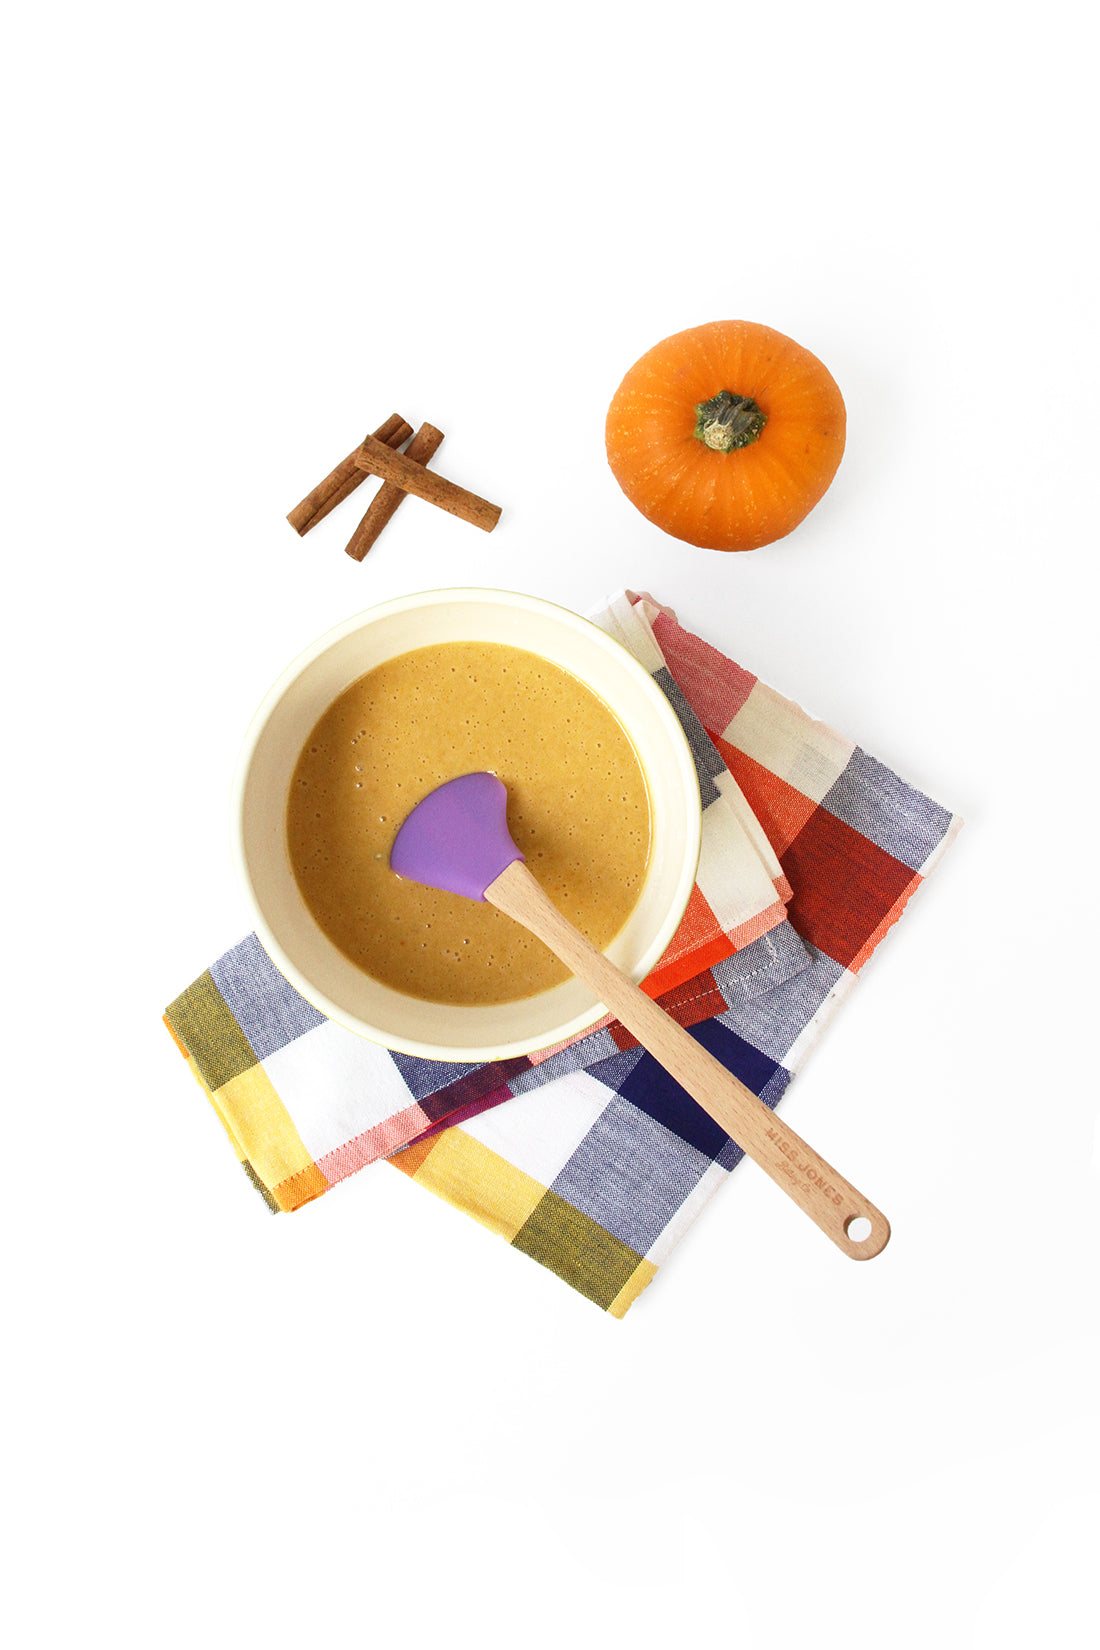 Image from above of a mixing bowl with Miss Jones Baking Co Pumpkin Pancake batter next to a mini pumpkin and cinnamon sticks